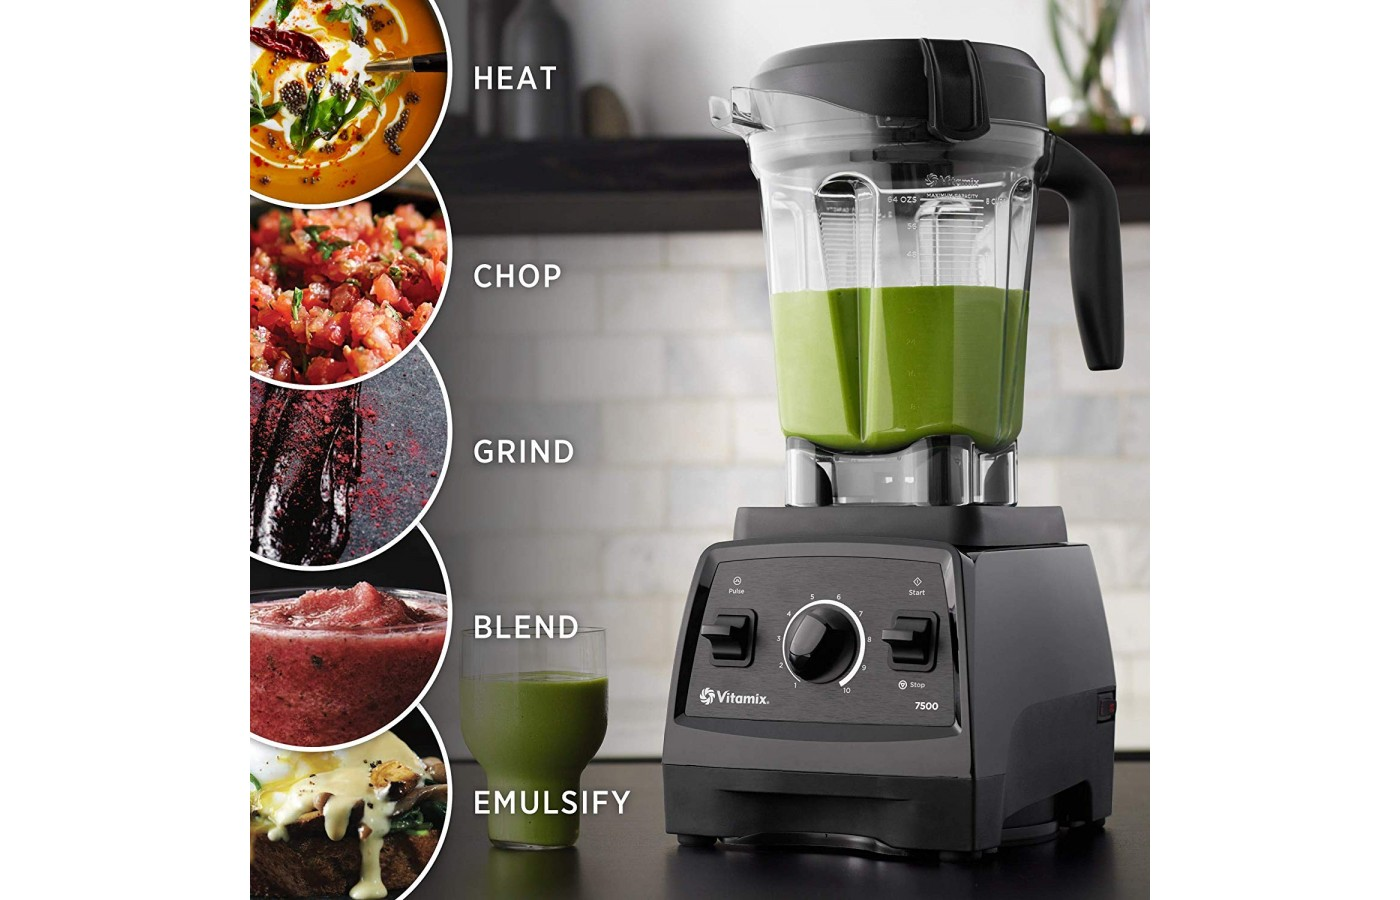 The blender makes quick work of almost all chopping mixing, and blending tasks.